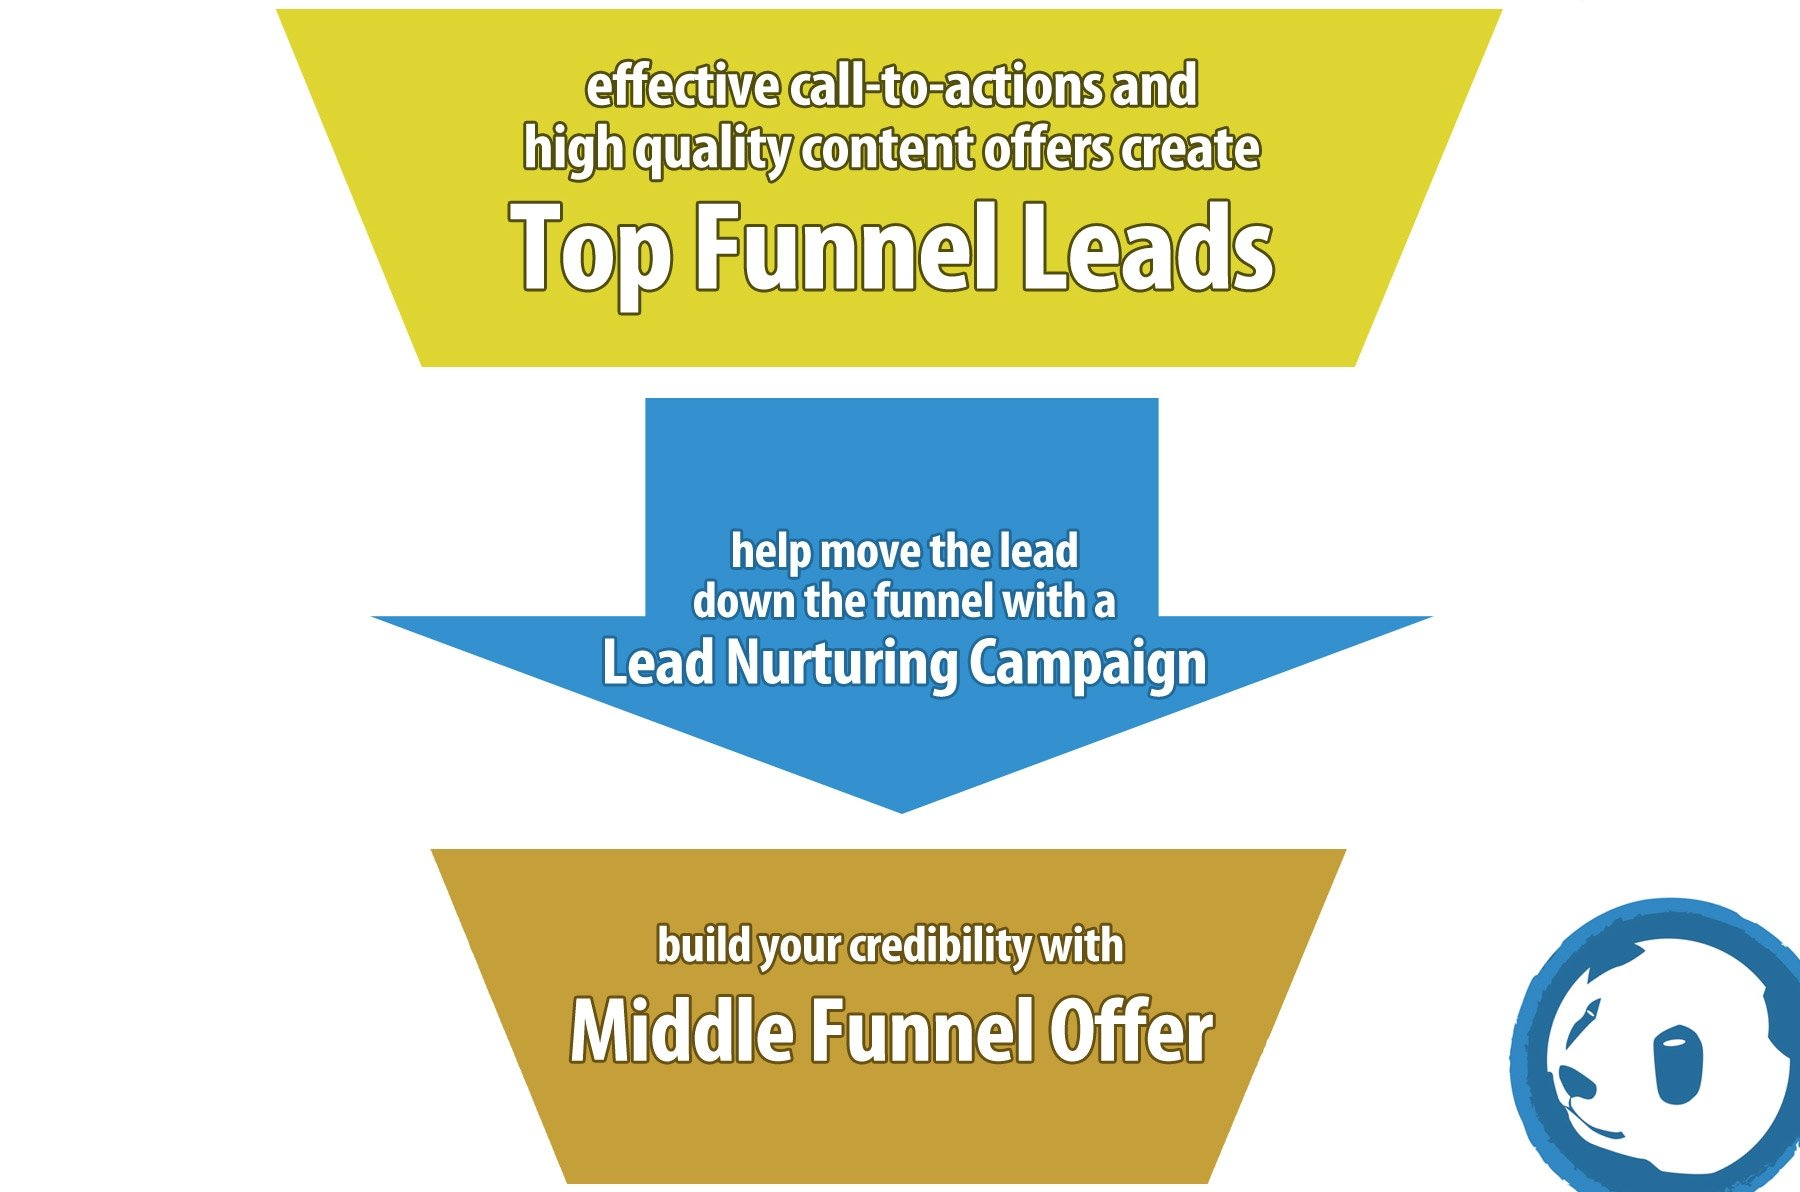 What is a Lead Nurturing Campaign?